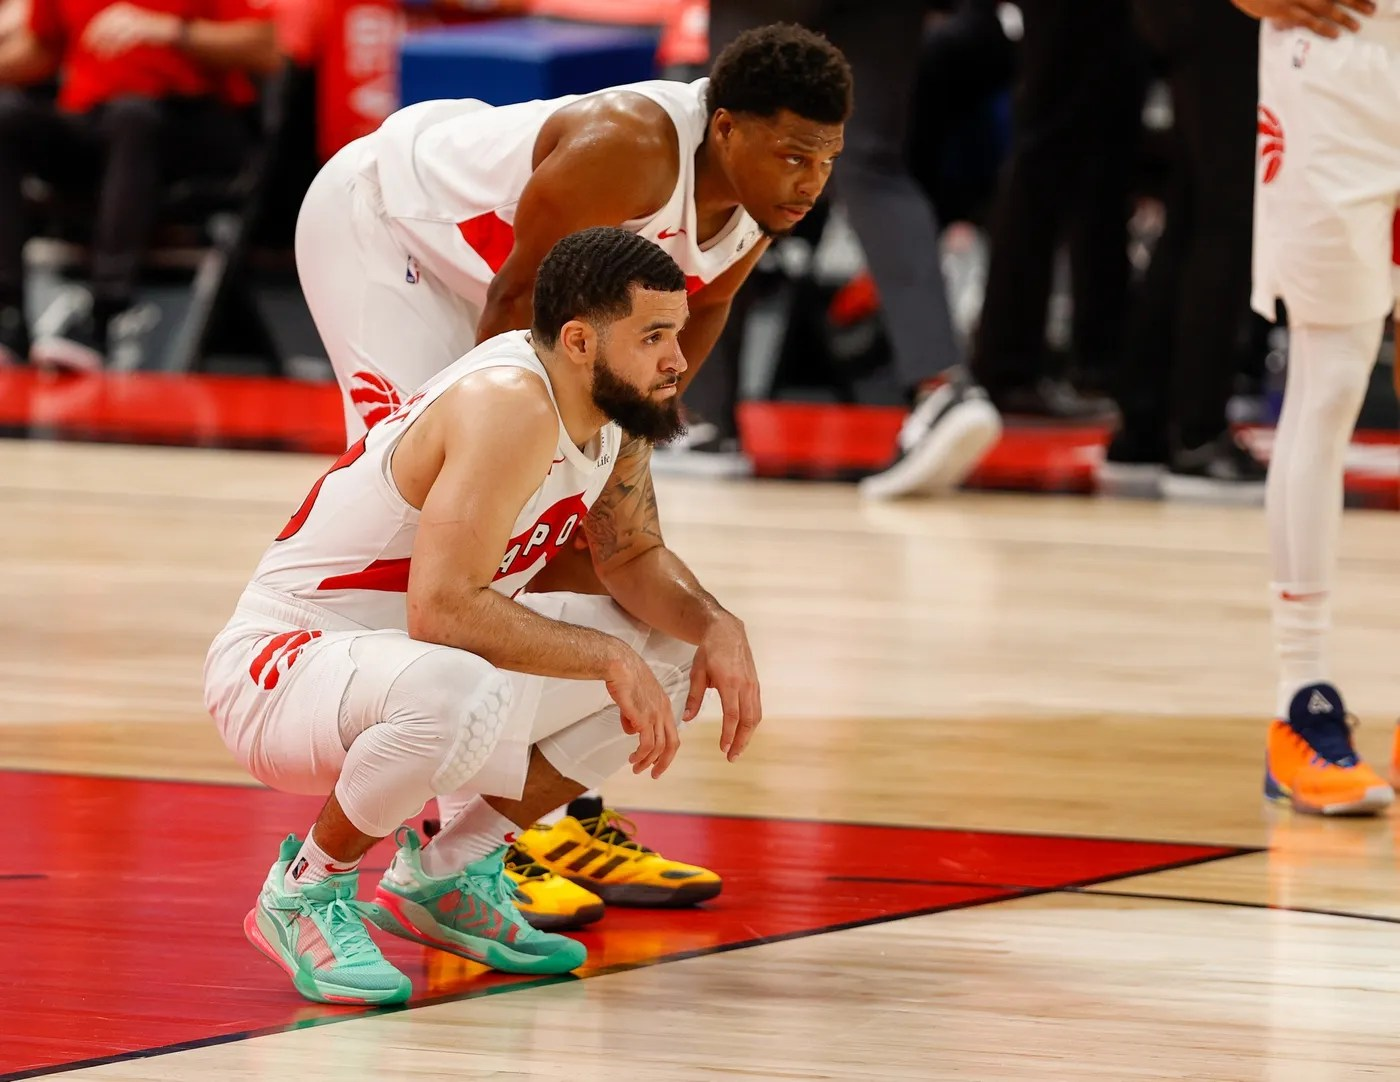 Apr 26, 2021; Tampa, Florida, USA; Toronto Raptors guard Kyle Lowry (right) and Toronto Raptors guard Fred VanVleet (left) look on before the beginning of the third quarter against the Cleveland Cavaliers at Amalie Arena. Mandatory Credit: Nathan Ray Seebeck-USA TODAY Sports